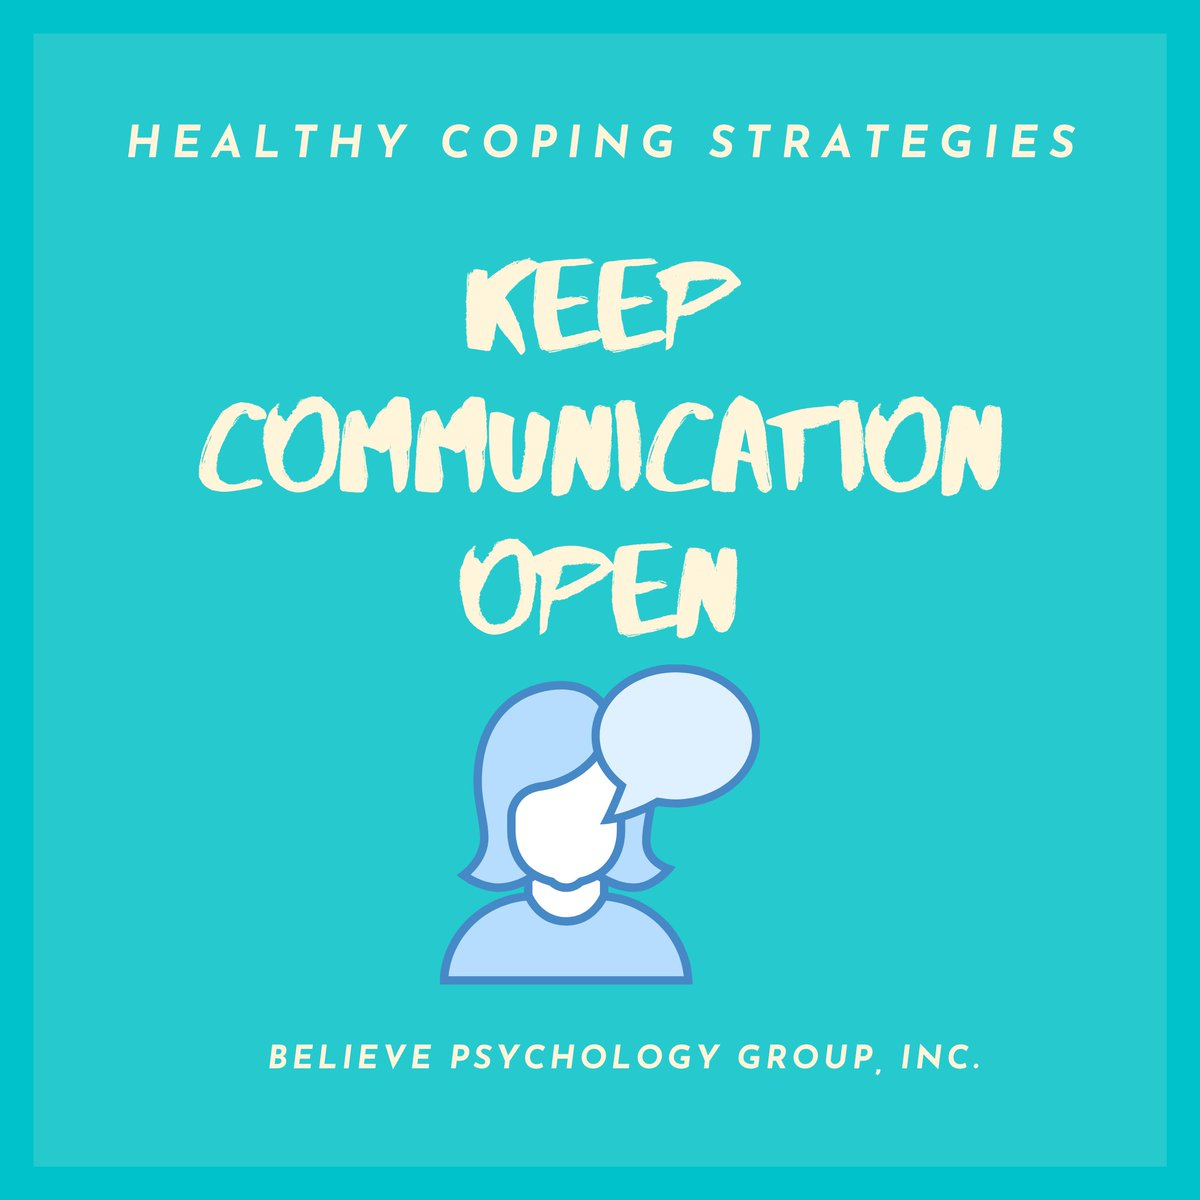 Maintain open communication.  #believepsychologygroup #coping #healthy #mentalhealth #Female #AfricanAmerican #strength #wellness #character #psychology #selfgrowth #resiliency #clarity #empowerment #mentalhealth #healing #worth #selfworth #selflove #love #courage #collaborate